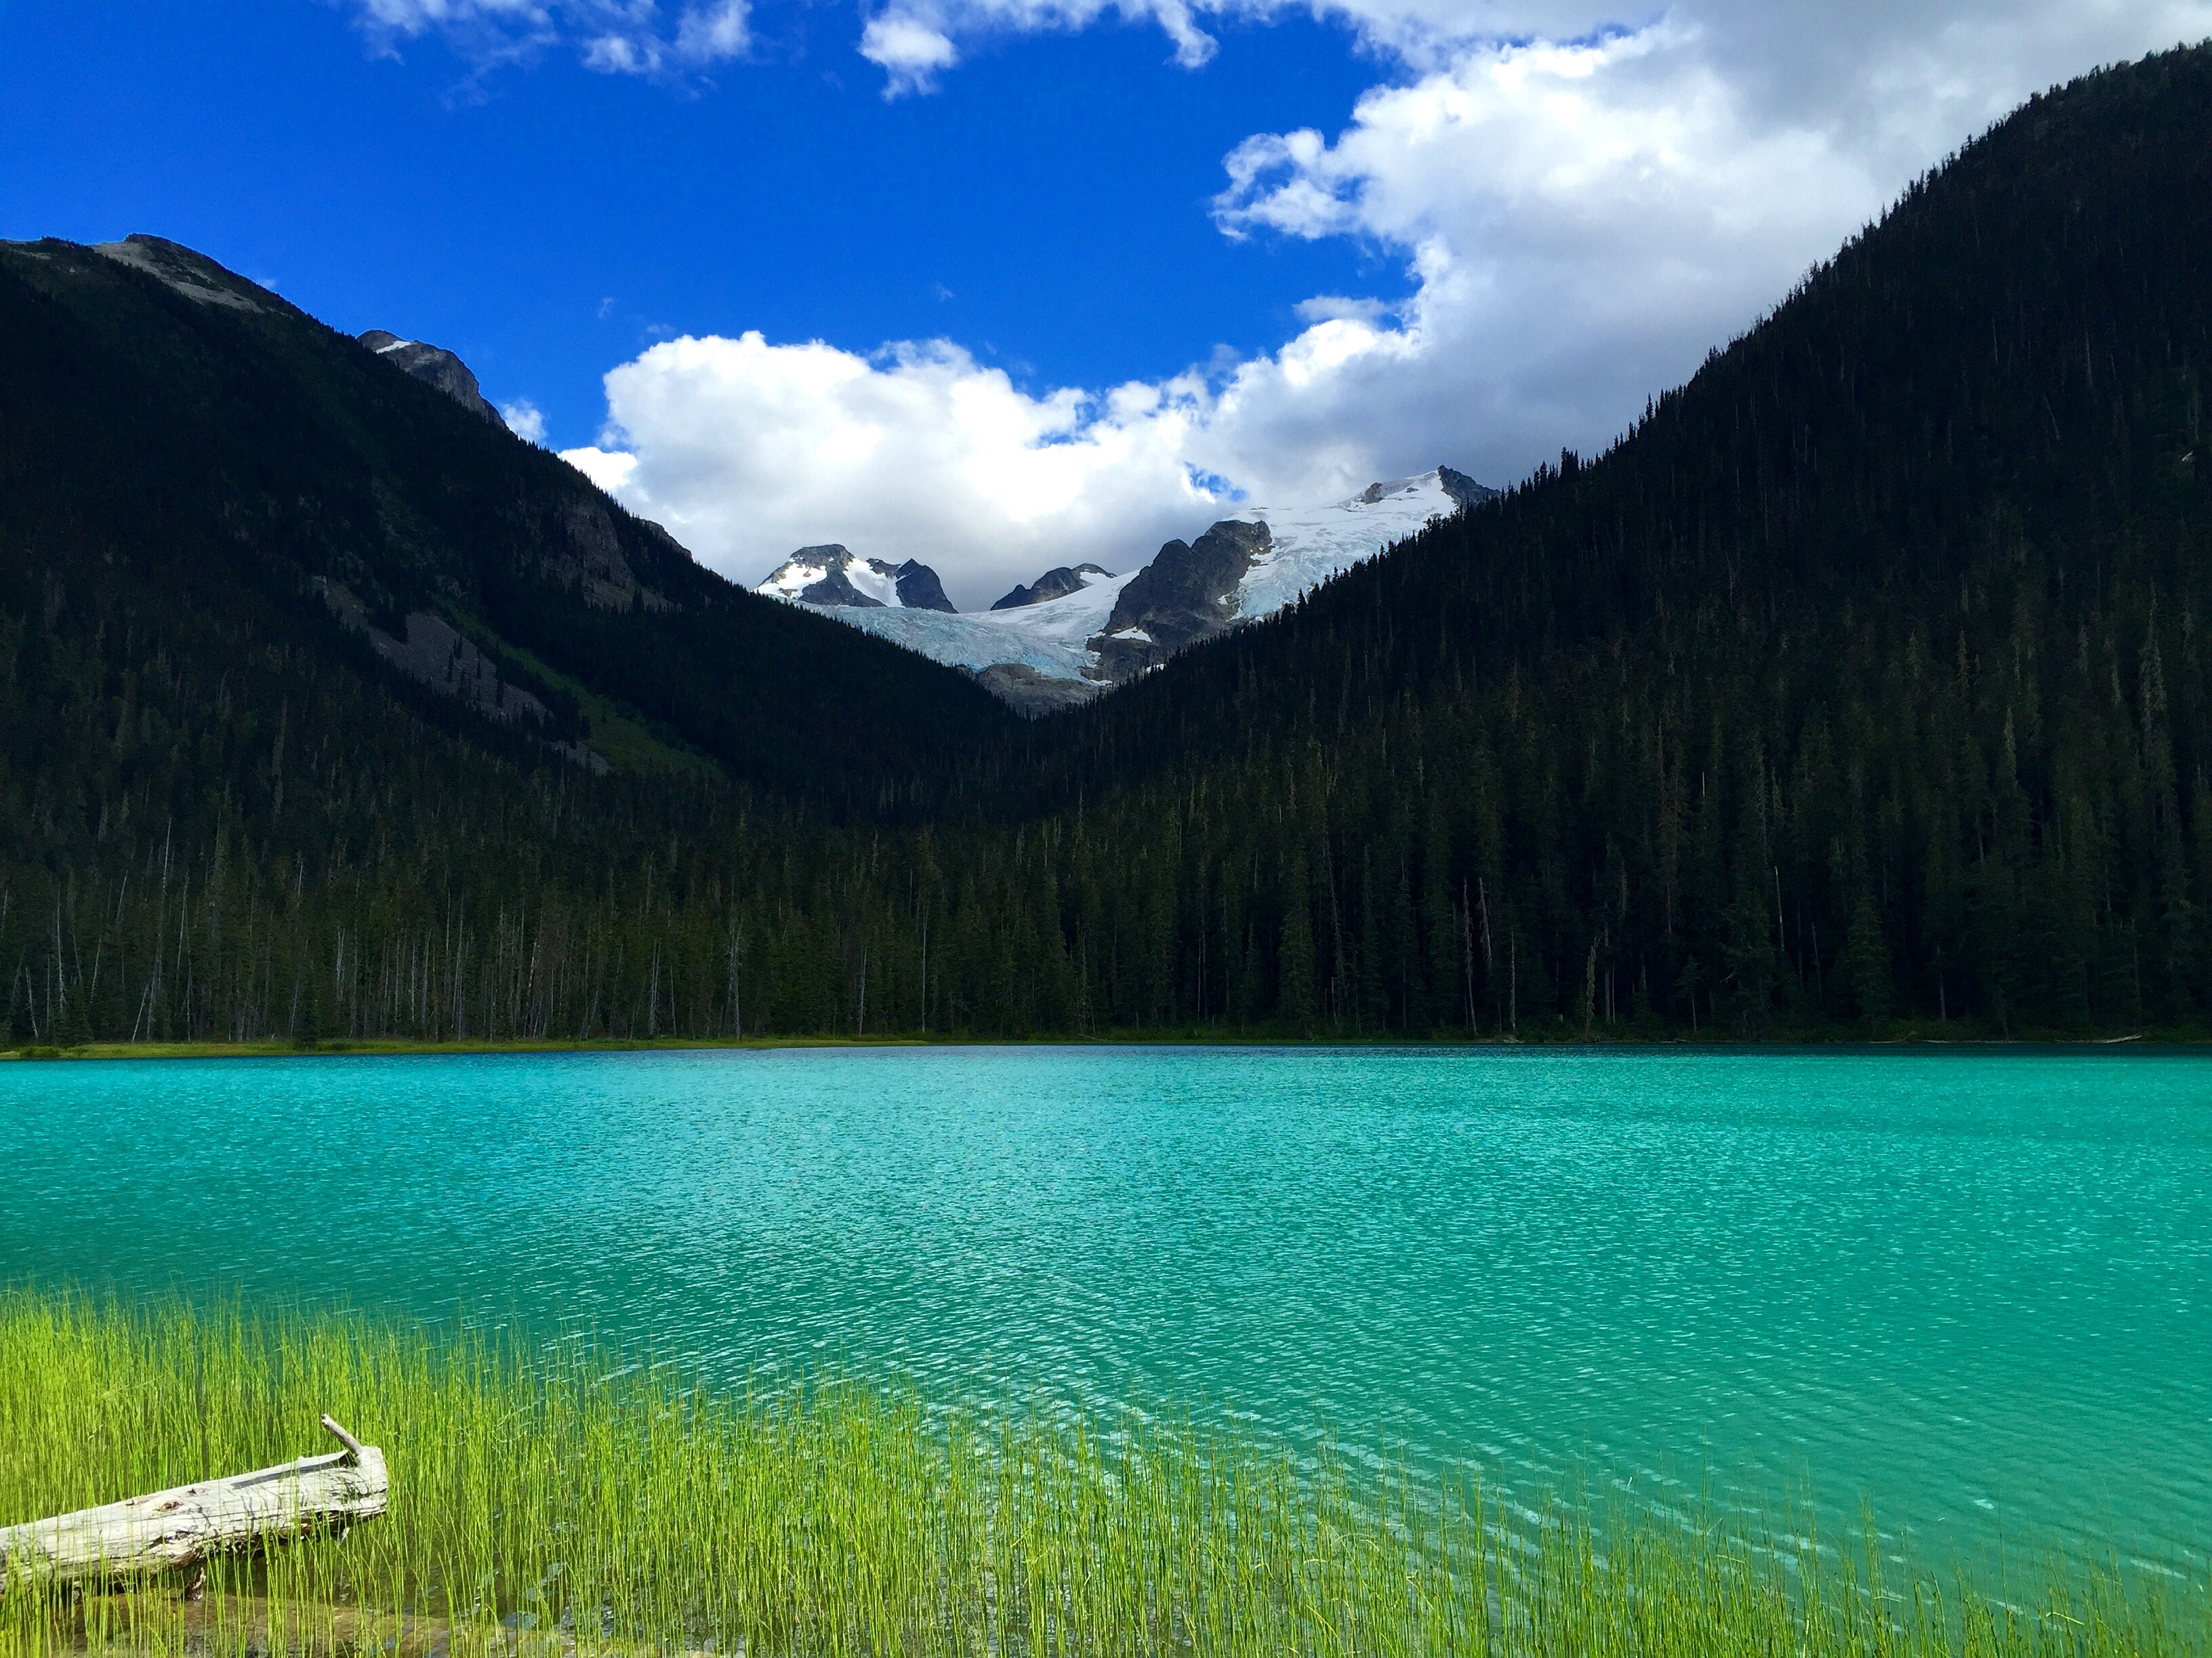 Joffre Lakes is a must-see part of any Whistler & Sea-to-Sky Highway itinerary